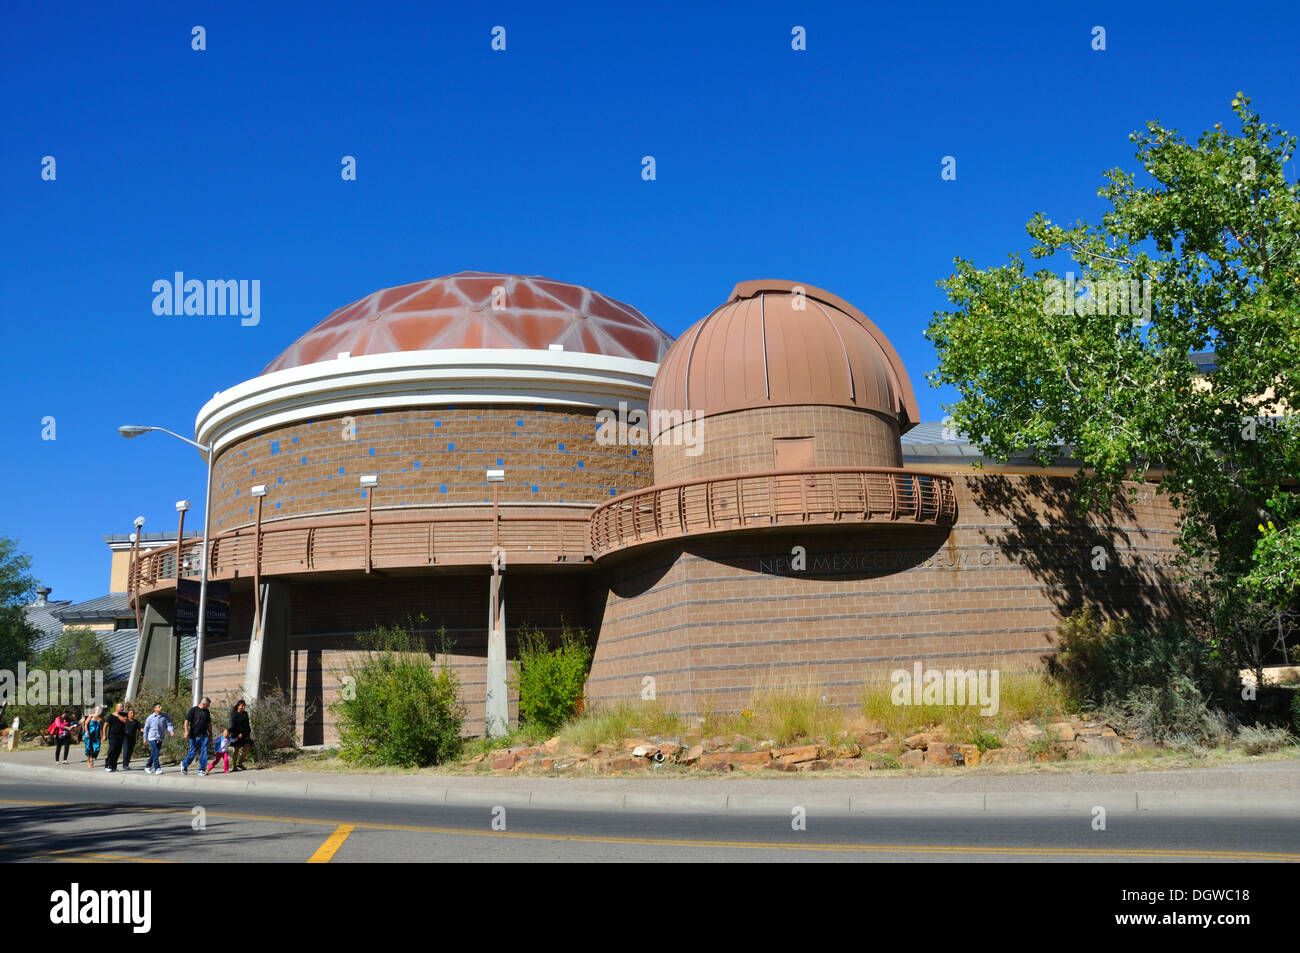 The Planetarium at the  Museum of Natural History and Science, Albuquerque, New Mexico, USA - Stock Image